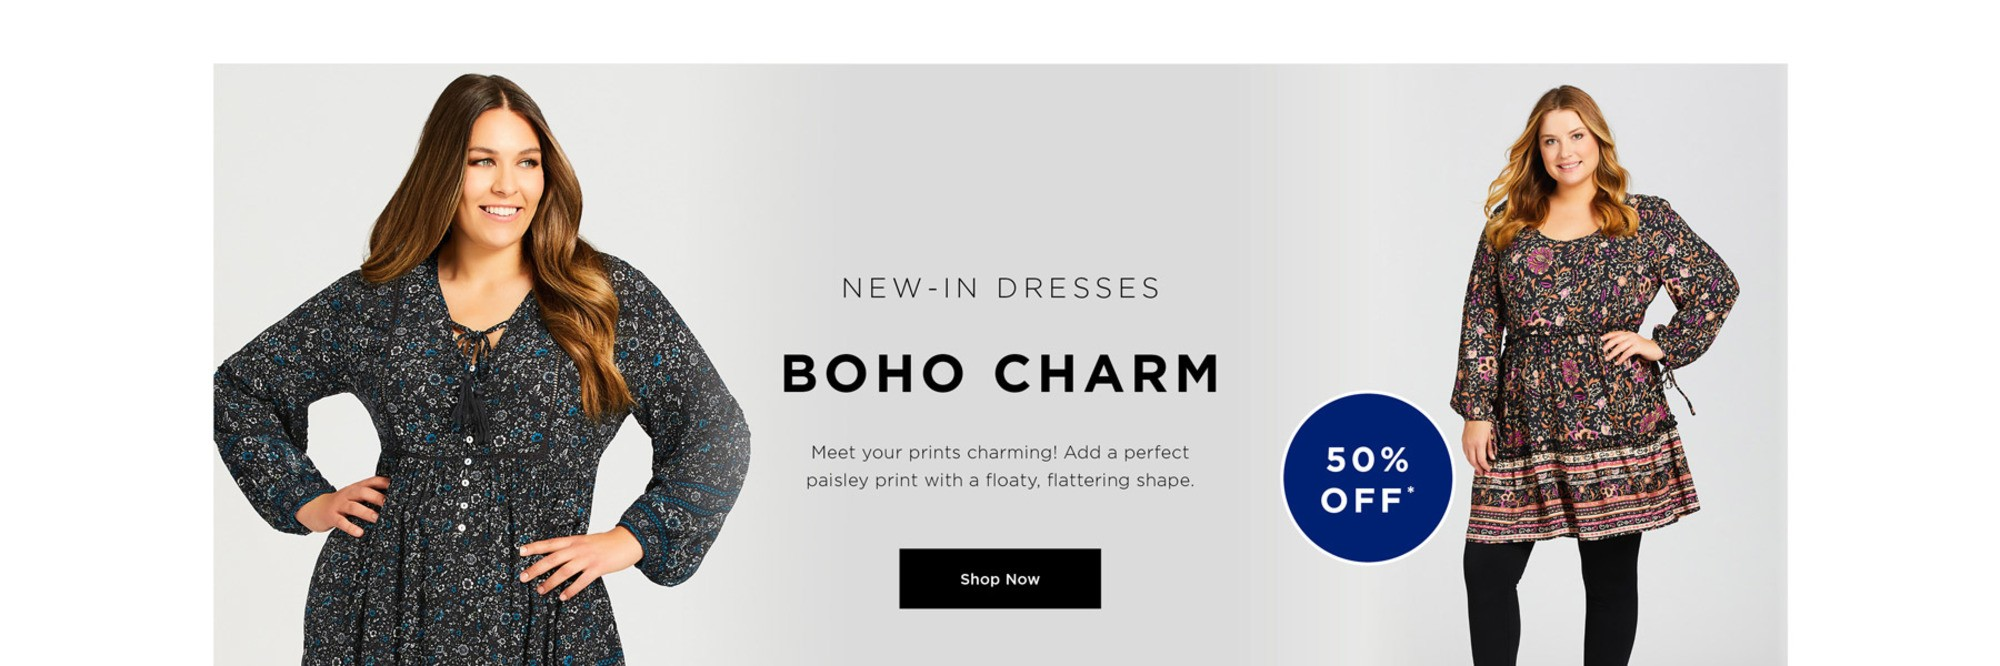 NEW IN DRESSES - BOHO CHARM -  Meet your prints charming! Add a perfect paisley print with a floaty, flattering shape - 50% OFF - SHOP NOW